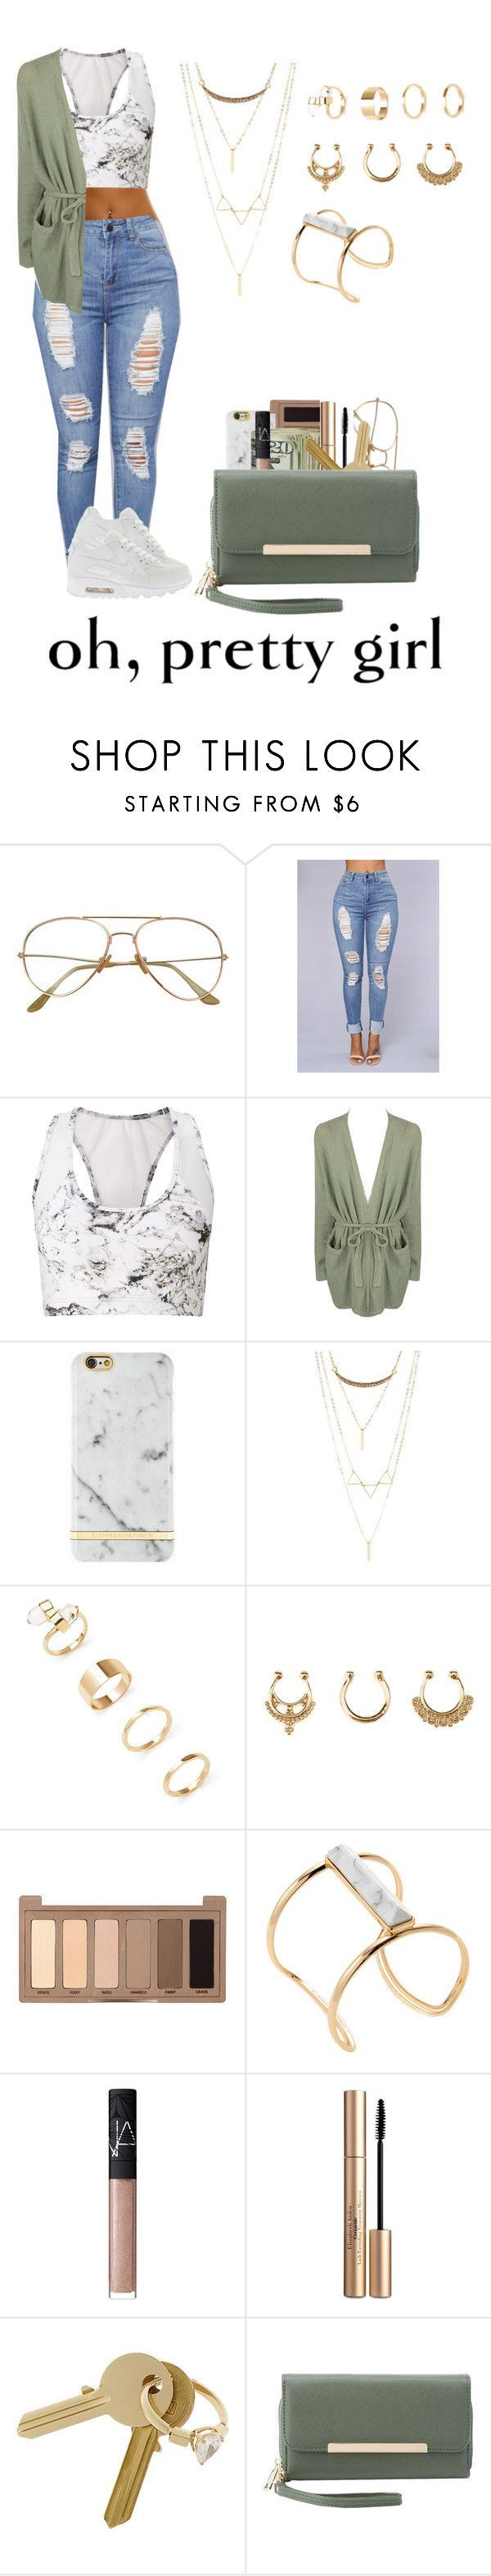 """""""9th grade"""" by life957 ❤ liked on Polyvore featuring Varley, One Grey Day, NIKE, Richmond & Finch, Charlotte Russe, Forever 21, Urban Decay, Soo Ihn Kim, NARS Cosmetics and Elizabeth Arden"""